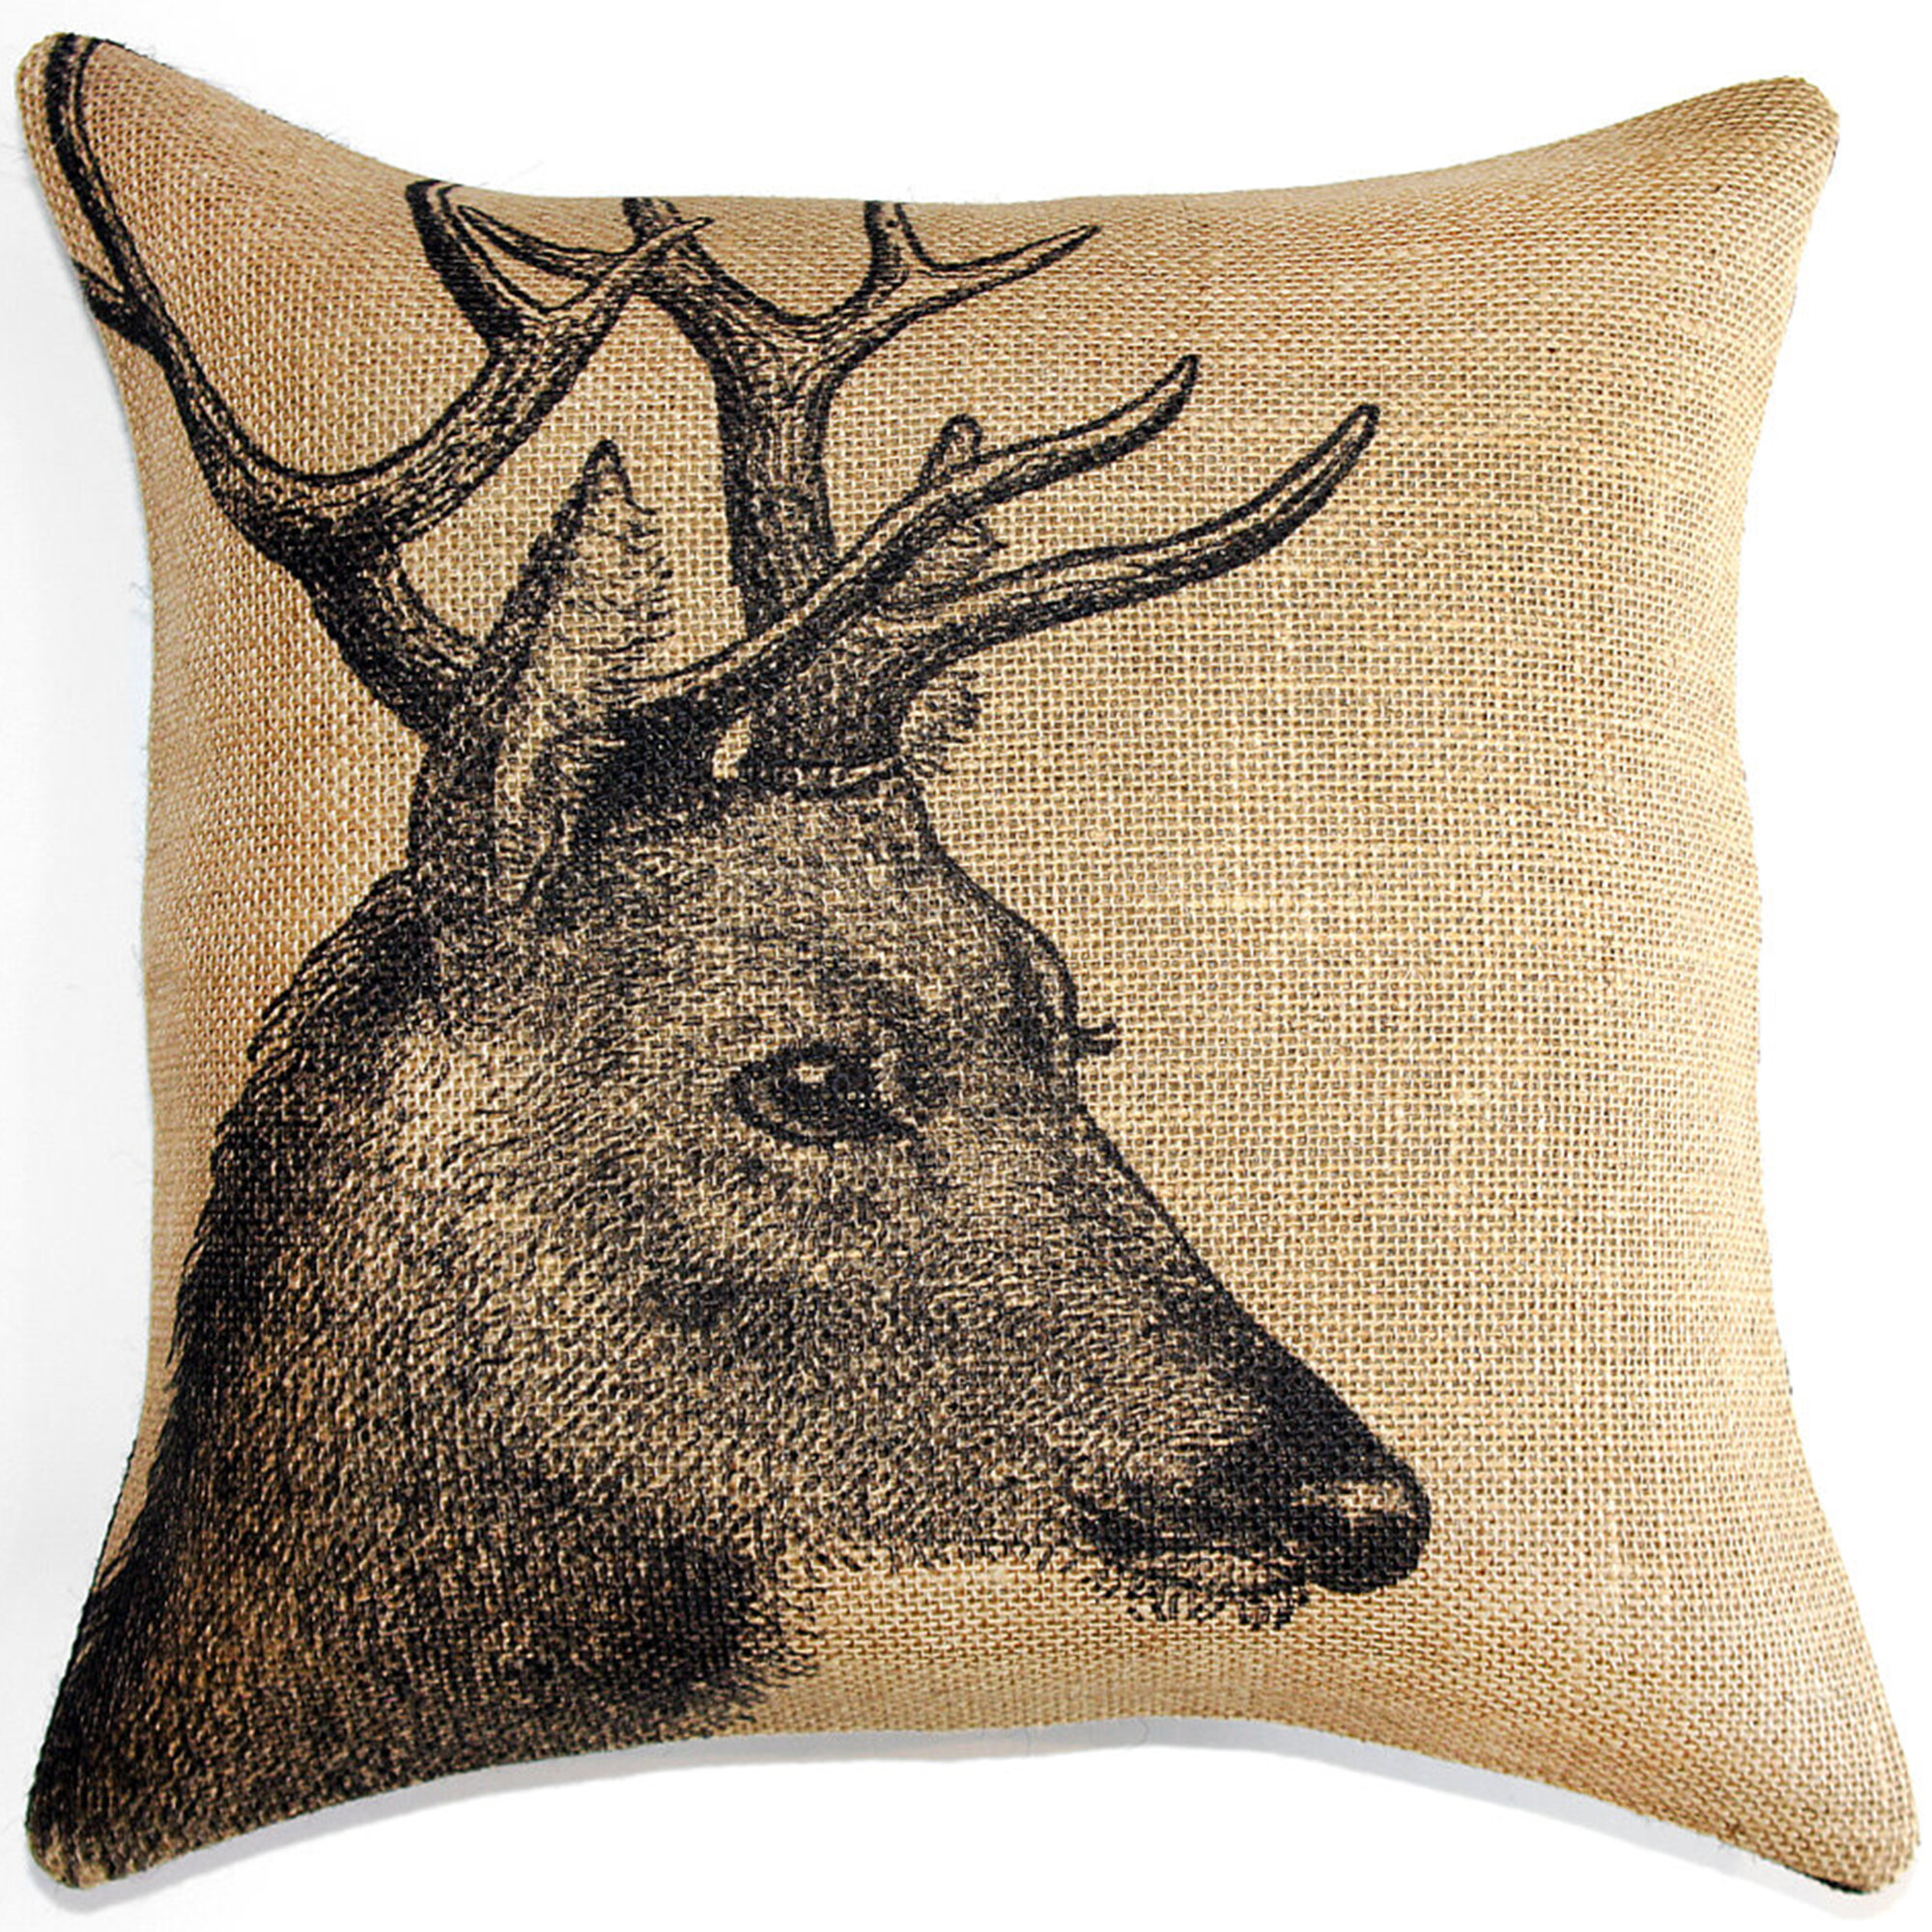 Throw Pillows Deer : TheWatsonShop Deer Burlap Throw Pillow eBay